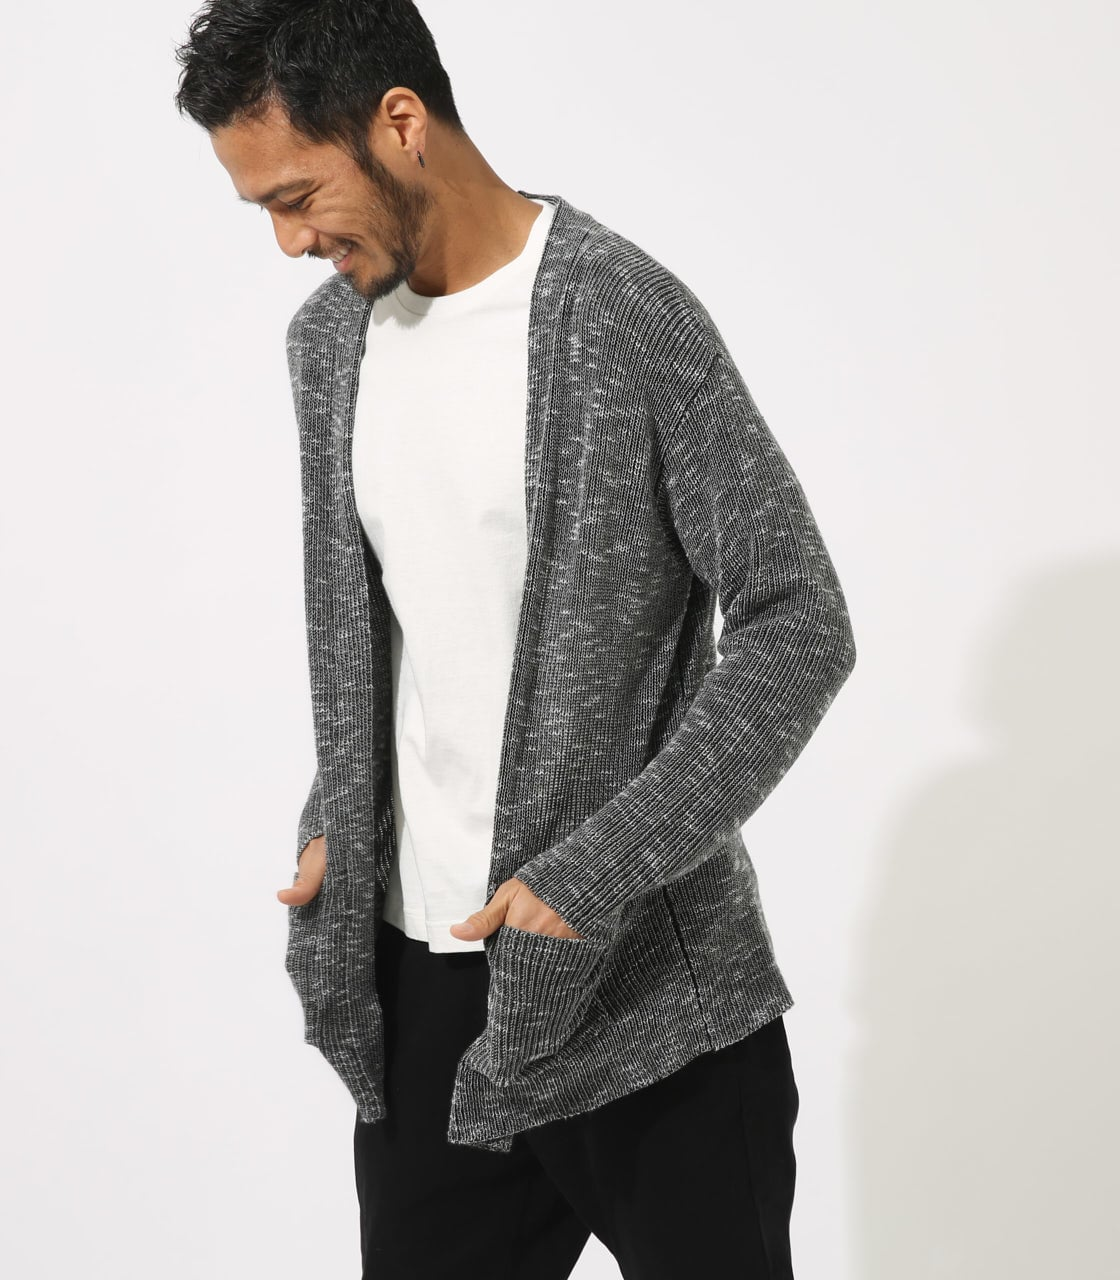 【AZUL BY MOUSSY】RIB STITCH CARDIGAN 詳細画像 柄BLK 1